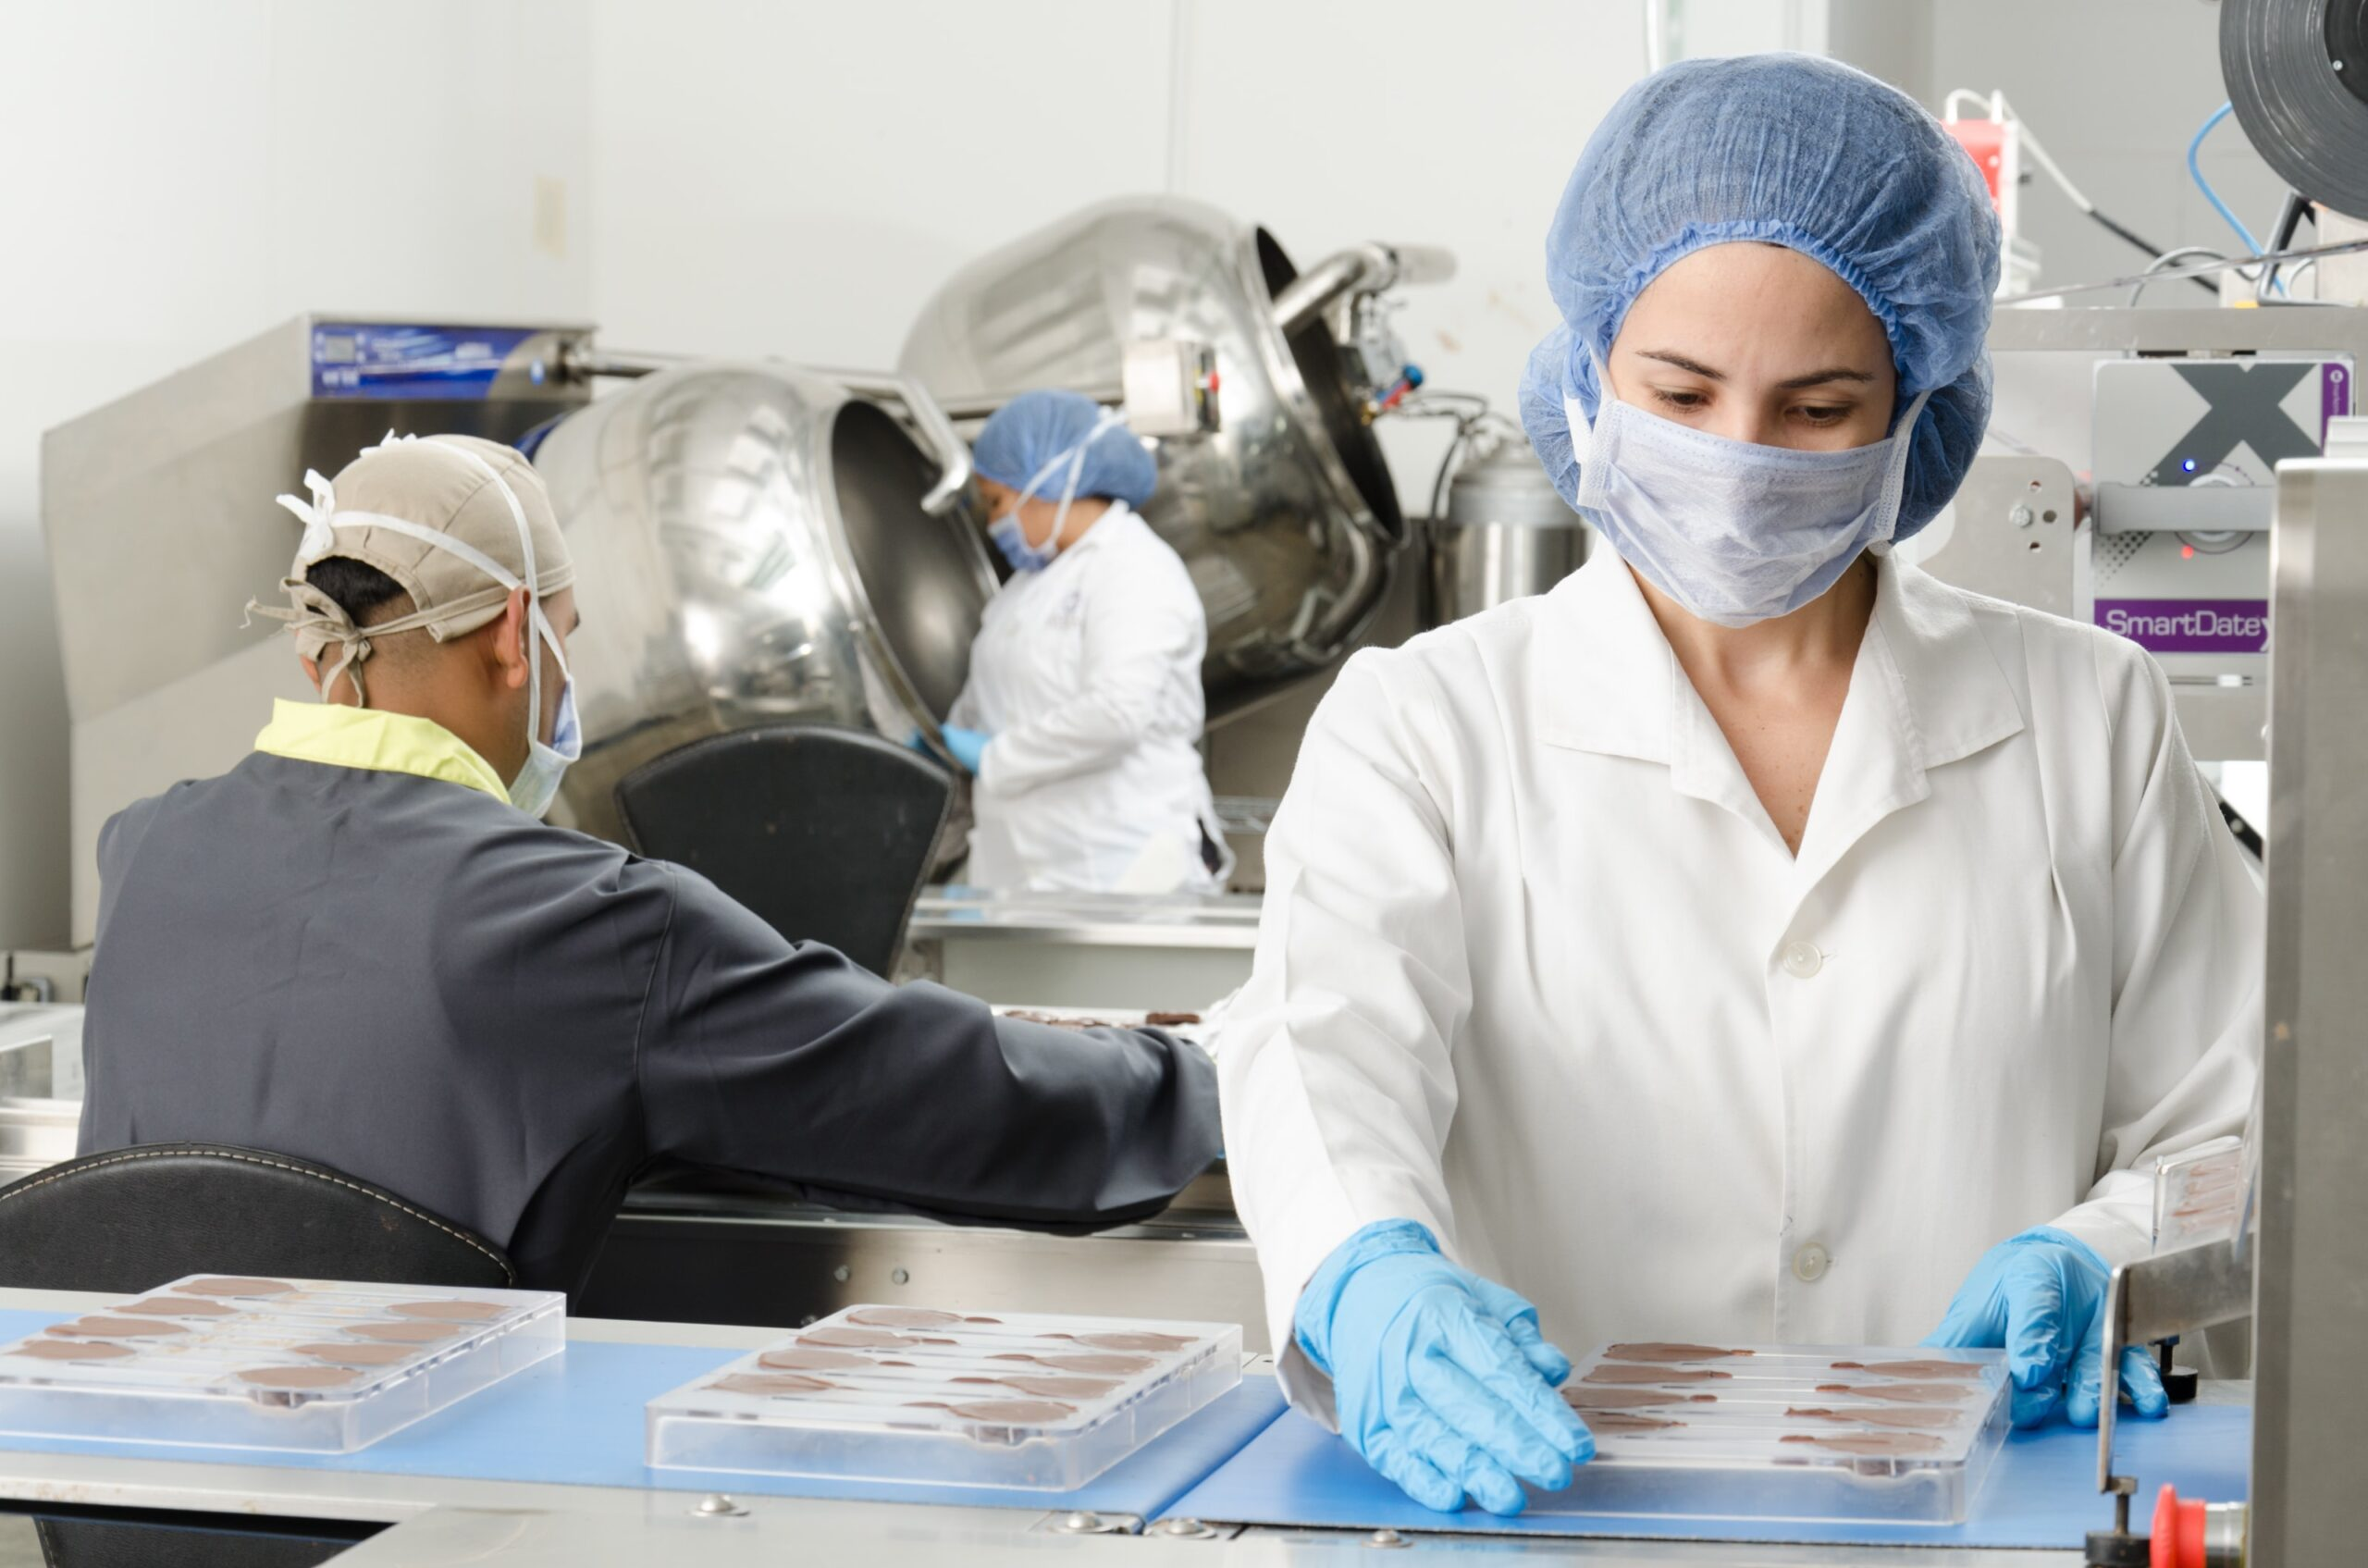 lady-wearing-overall-and-gloves-manufacturing-chocolate-feature-image-for-food-and-beverage-industry-blog